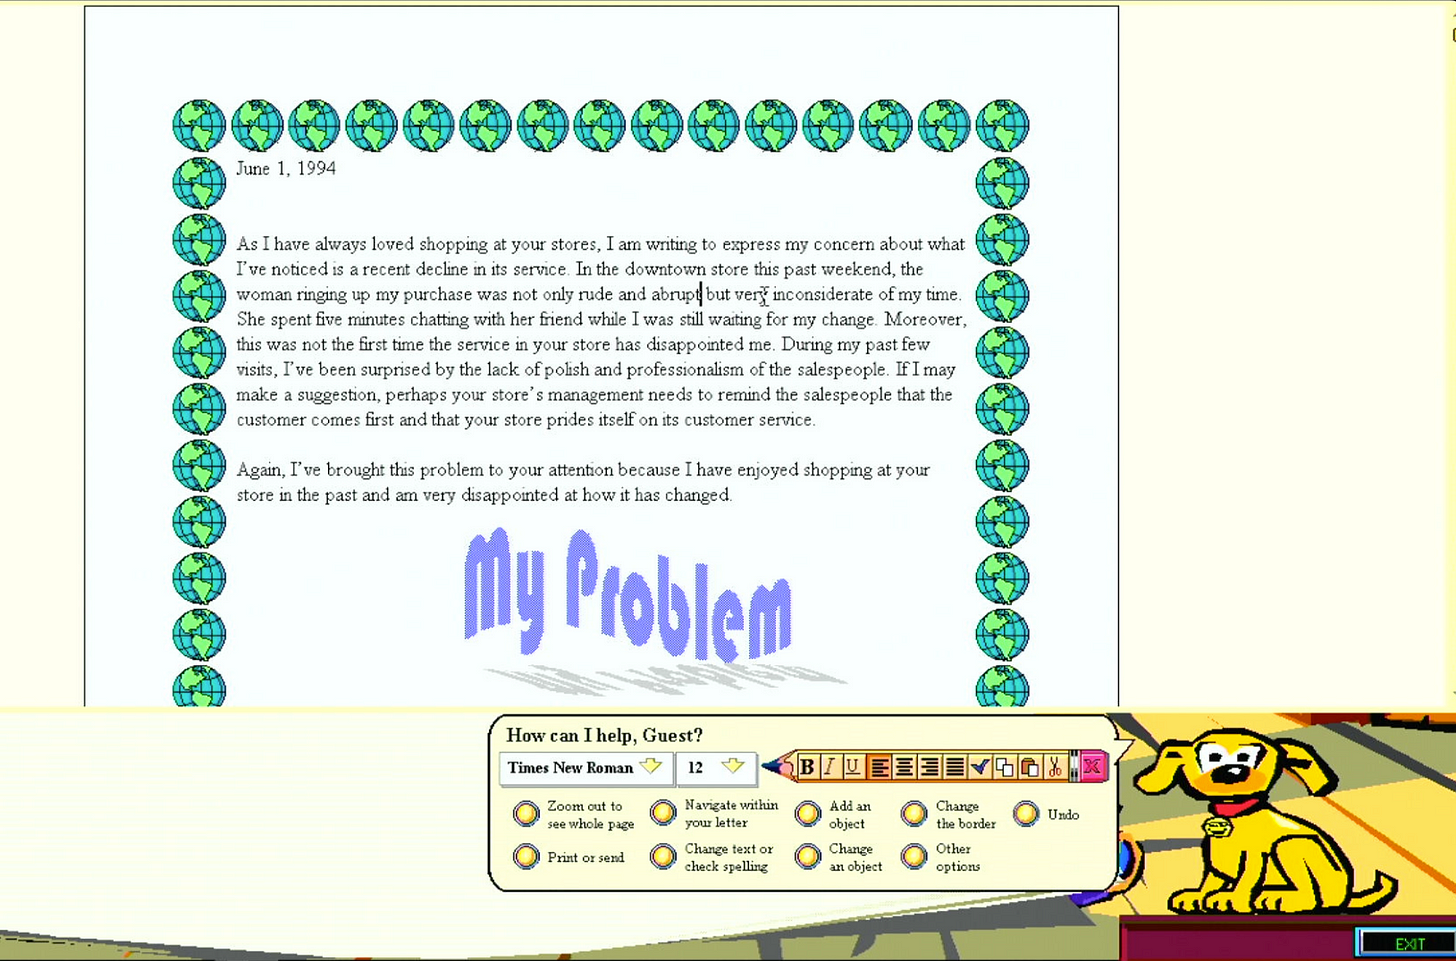 Writing a letter with Microsoft Bob